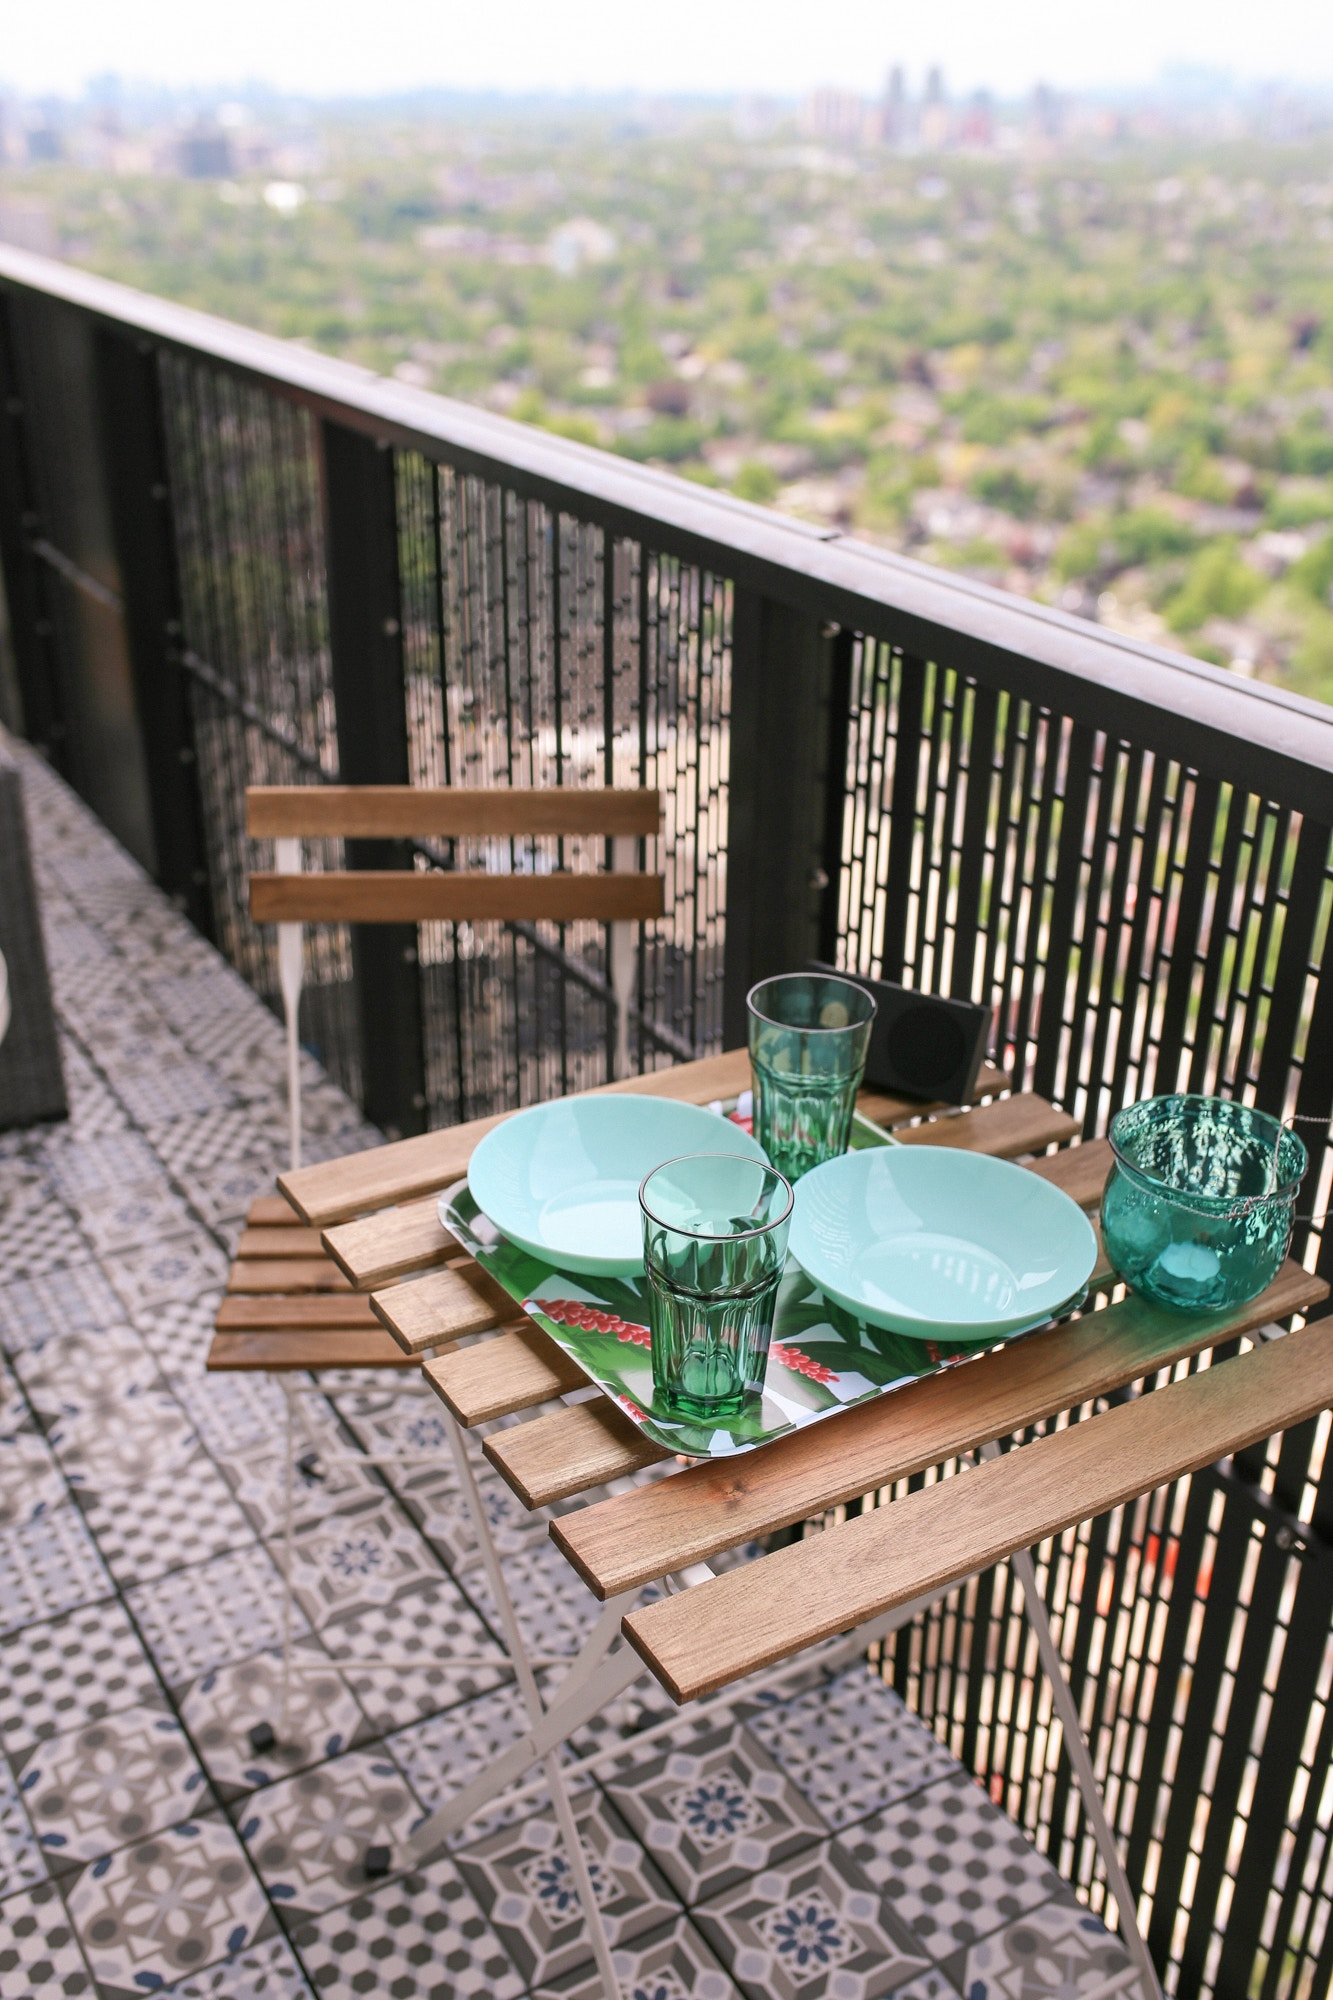 The IKEA Tärnö Bistro Set is a classic cheap and chic option for small spaces. I love that it folds up and makes for the perfect dining area on my balcony.